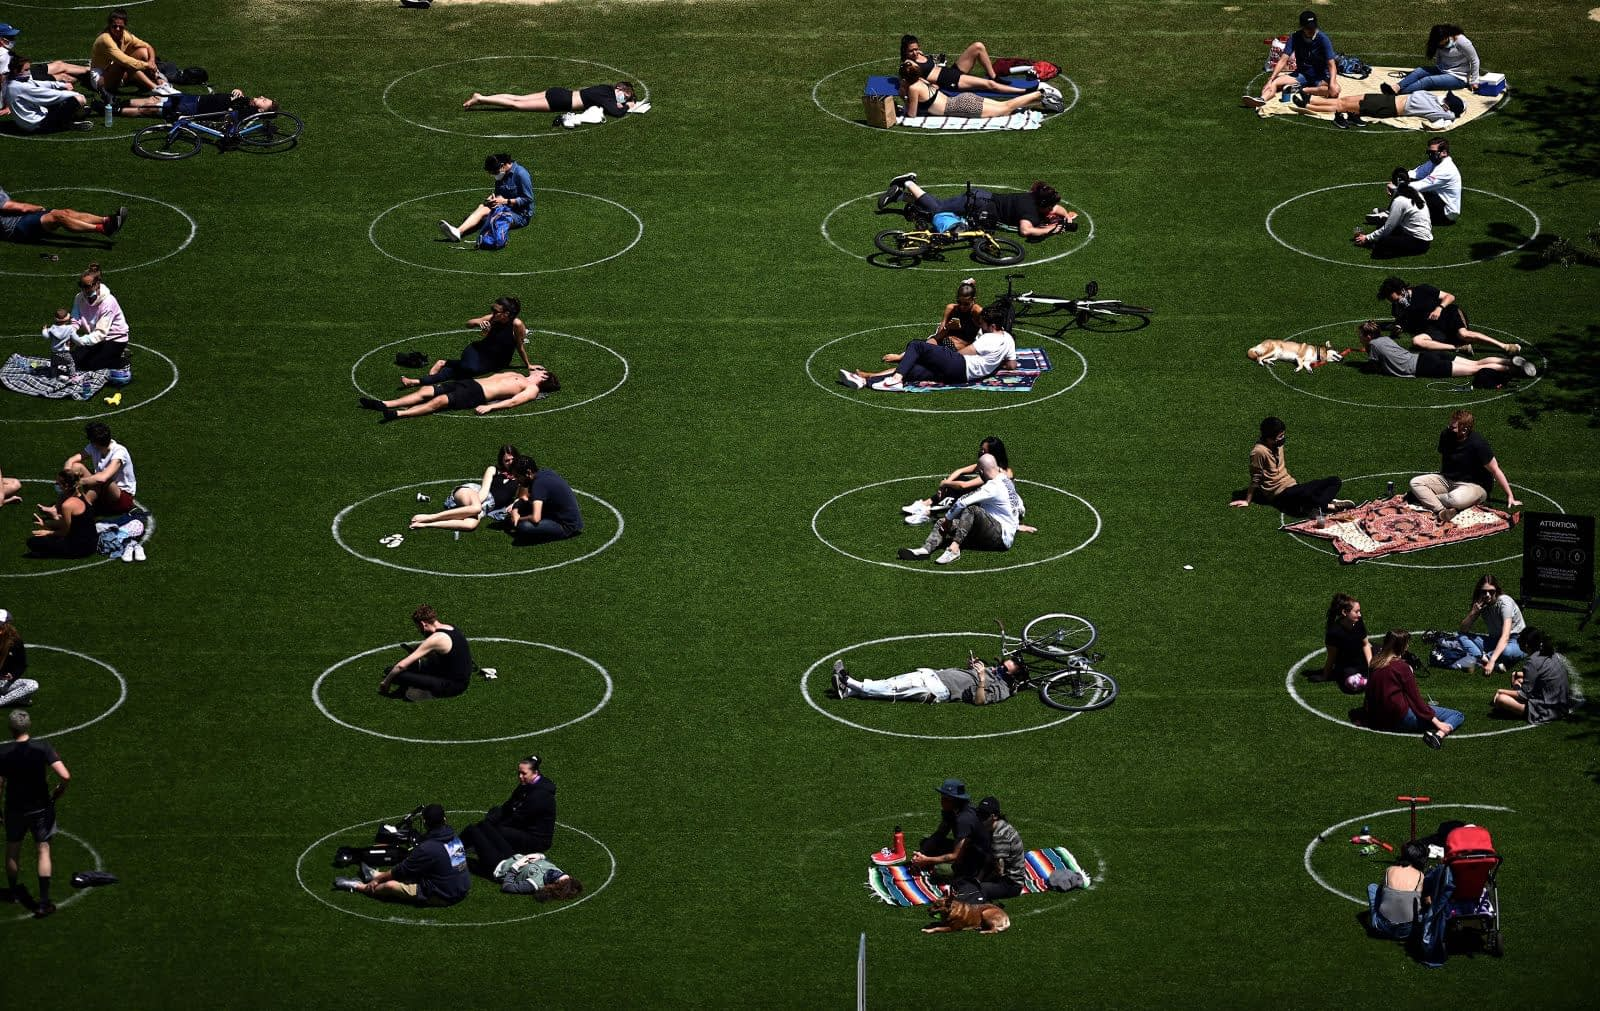 May 17, Domino Park, New York: People practice social distancing in circles drawn on the grass.